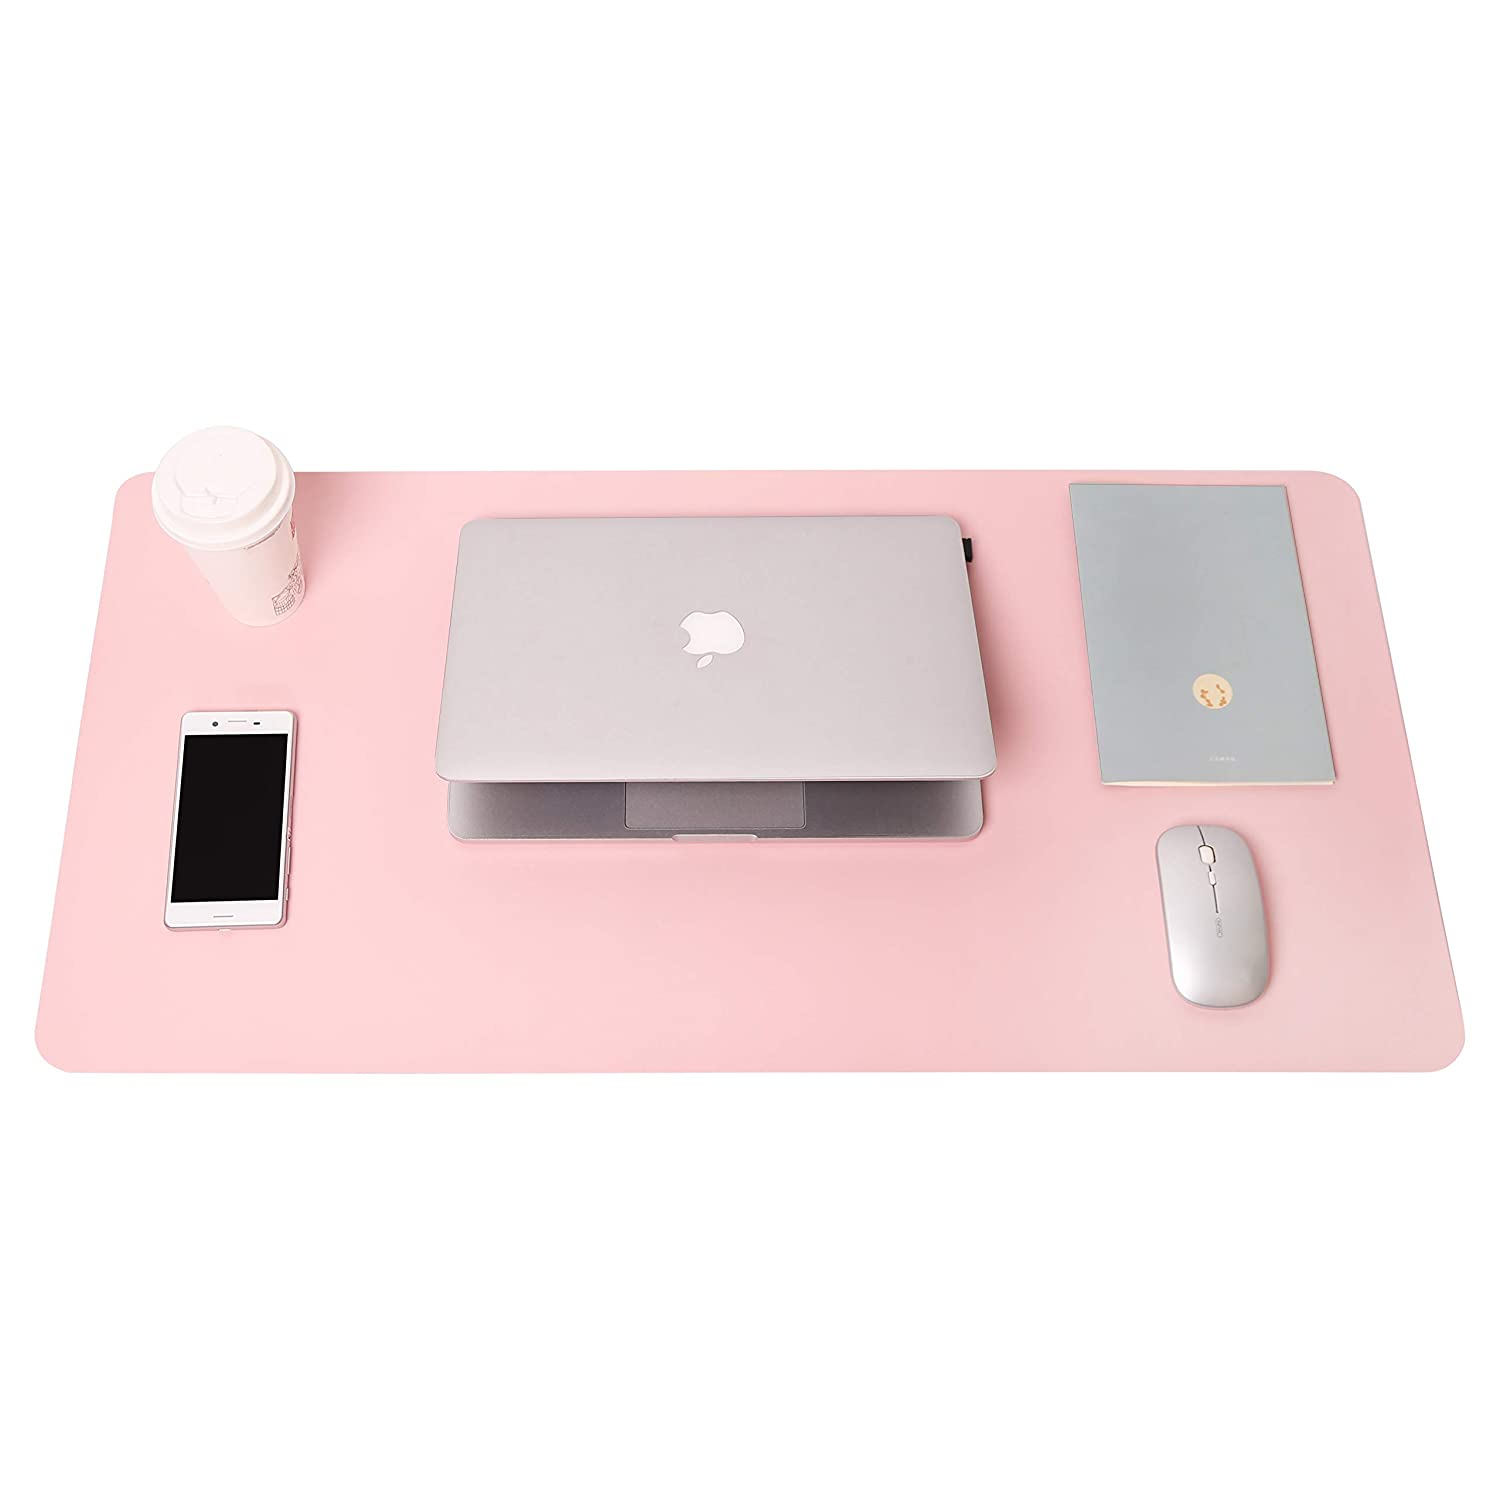 "Writing Desk Pad Protector, YSAGi Anti-Slip Thin Mousepad for Computers,Office Desk Accessories Laptop Waterproof Desk Protector for Office Decor and Home (Pink, 31.5"" x 15.7"")"